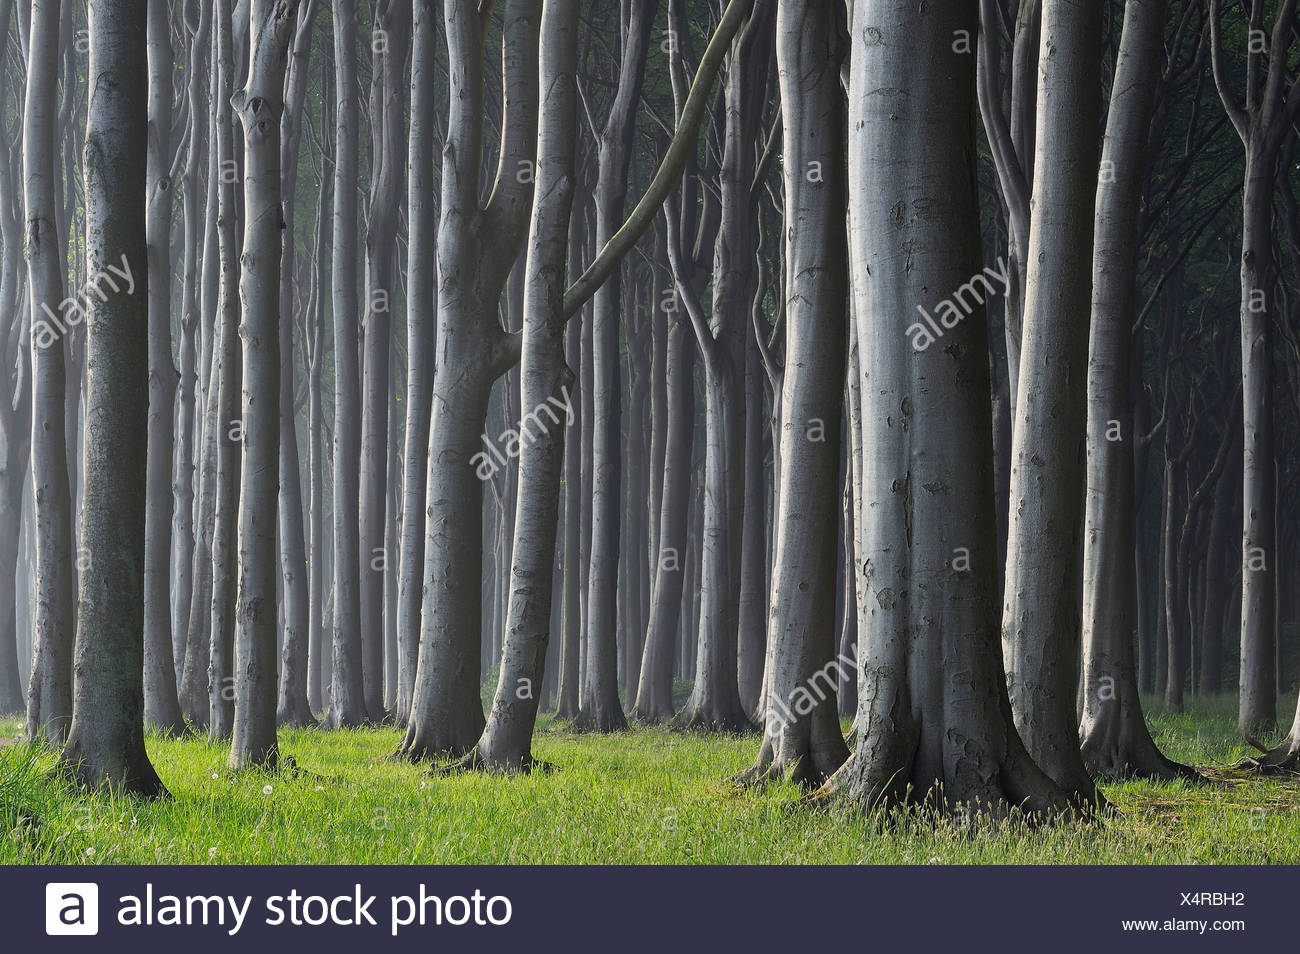 Mecklenburg-Western Pomerania, Beech tree forest Stock Photo